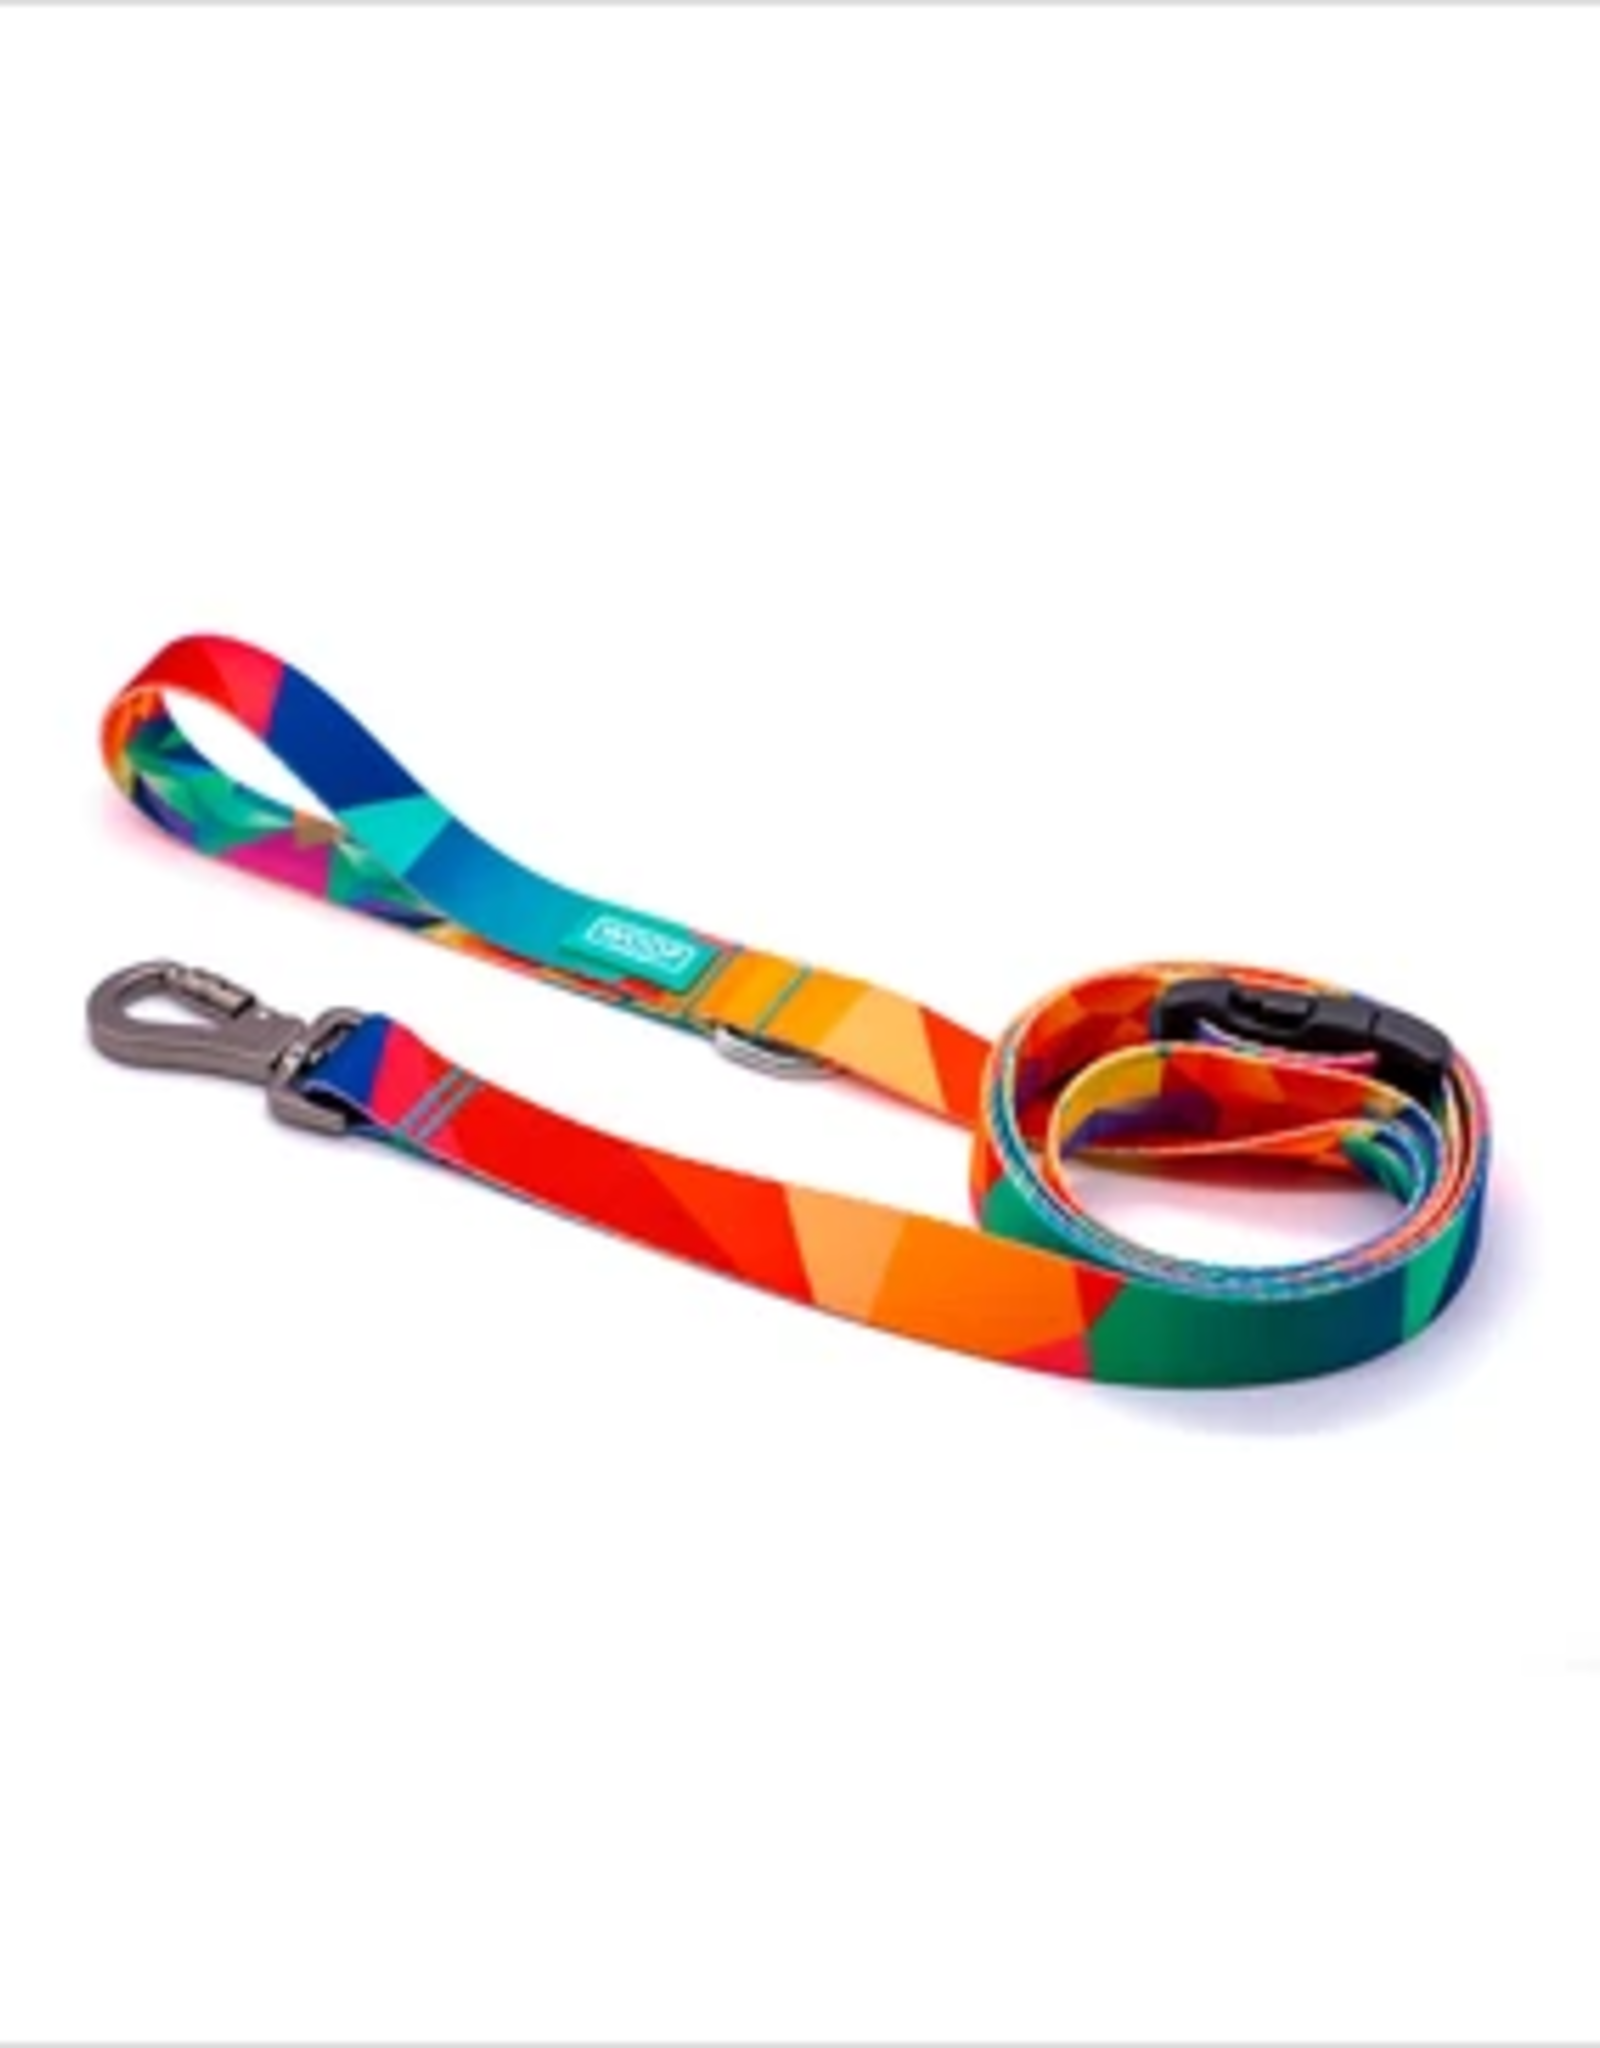 Woof Concept Woof Concept Polygon Leash M (W0.8 in , L 5 ft)